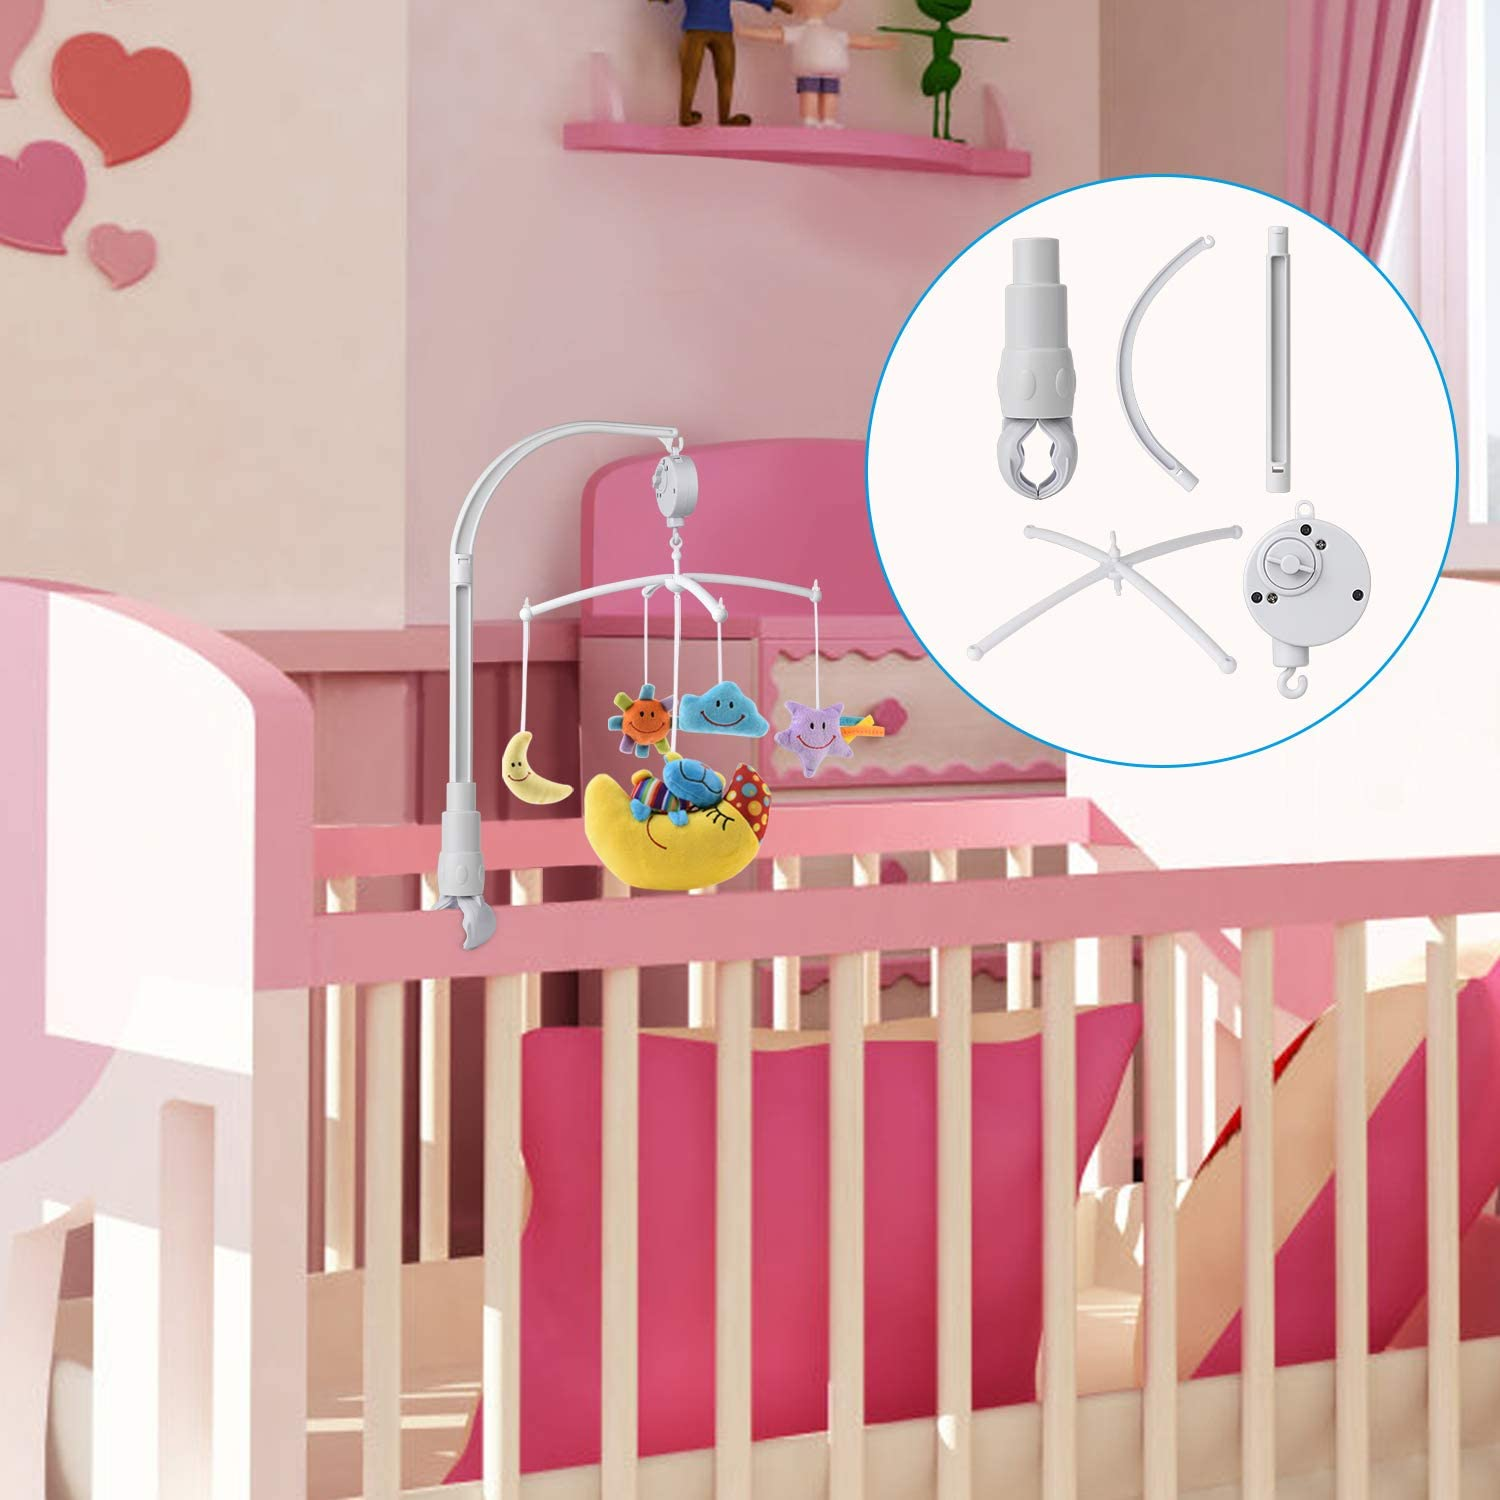 Baby Crib Mobile Musical Arm Bracket 23-Inch w Hanging Soft Toys Doll